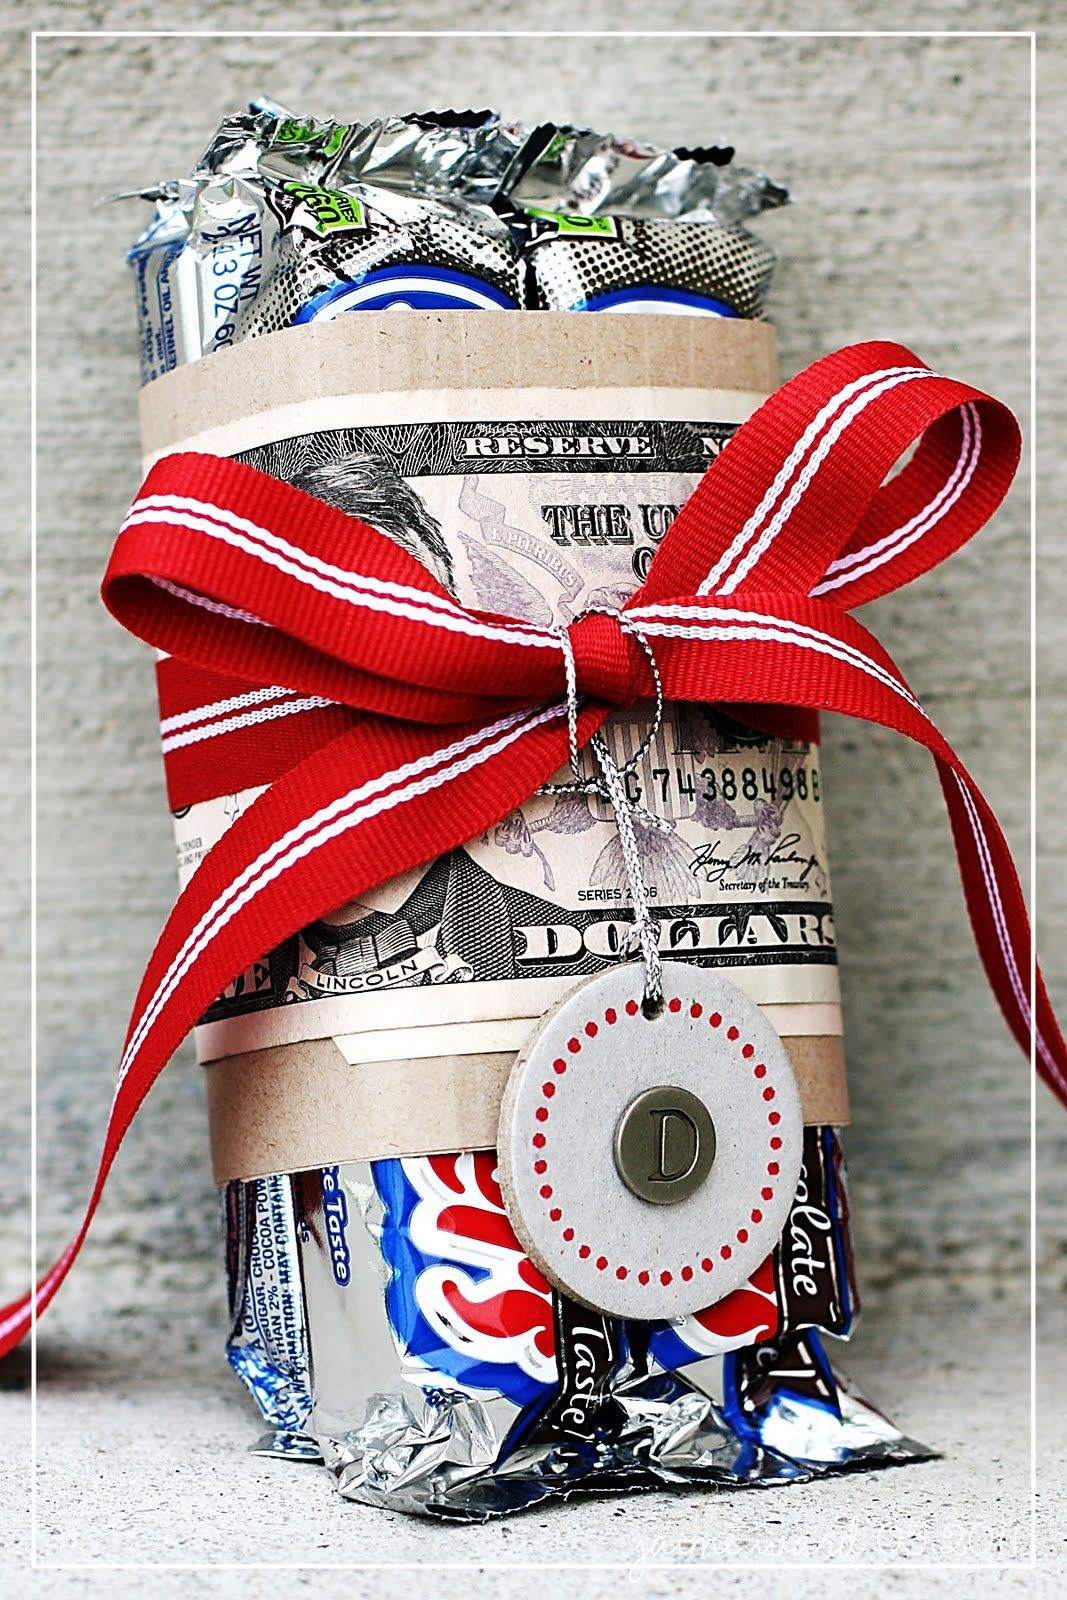 favorite candy & cash...fun gift for the hard-to-buy-for